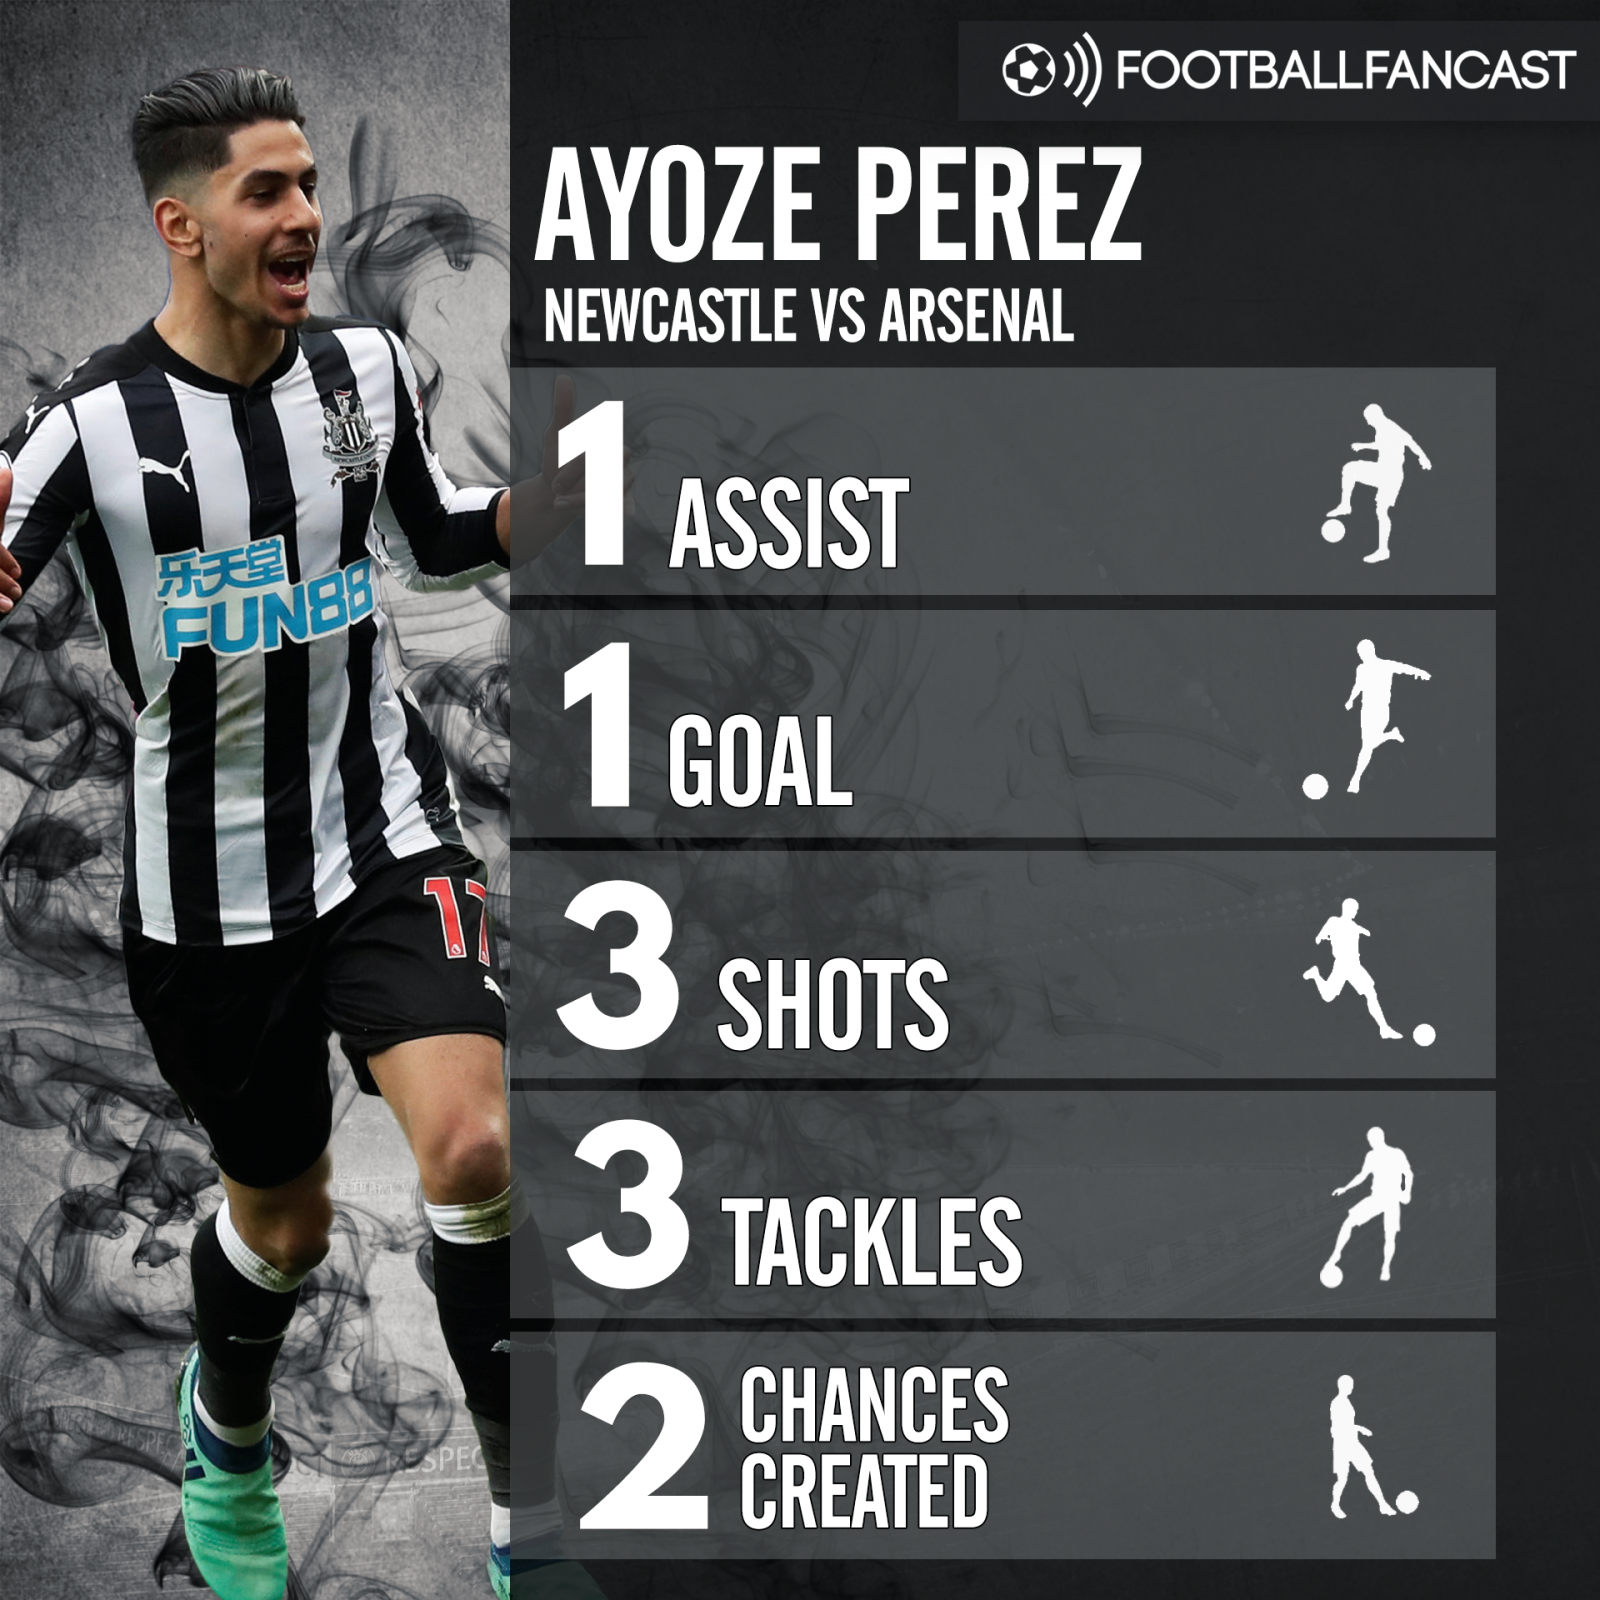 AYoze Perez's stats from Newcastle's 2-1 victory over Arsenal